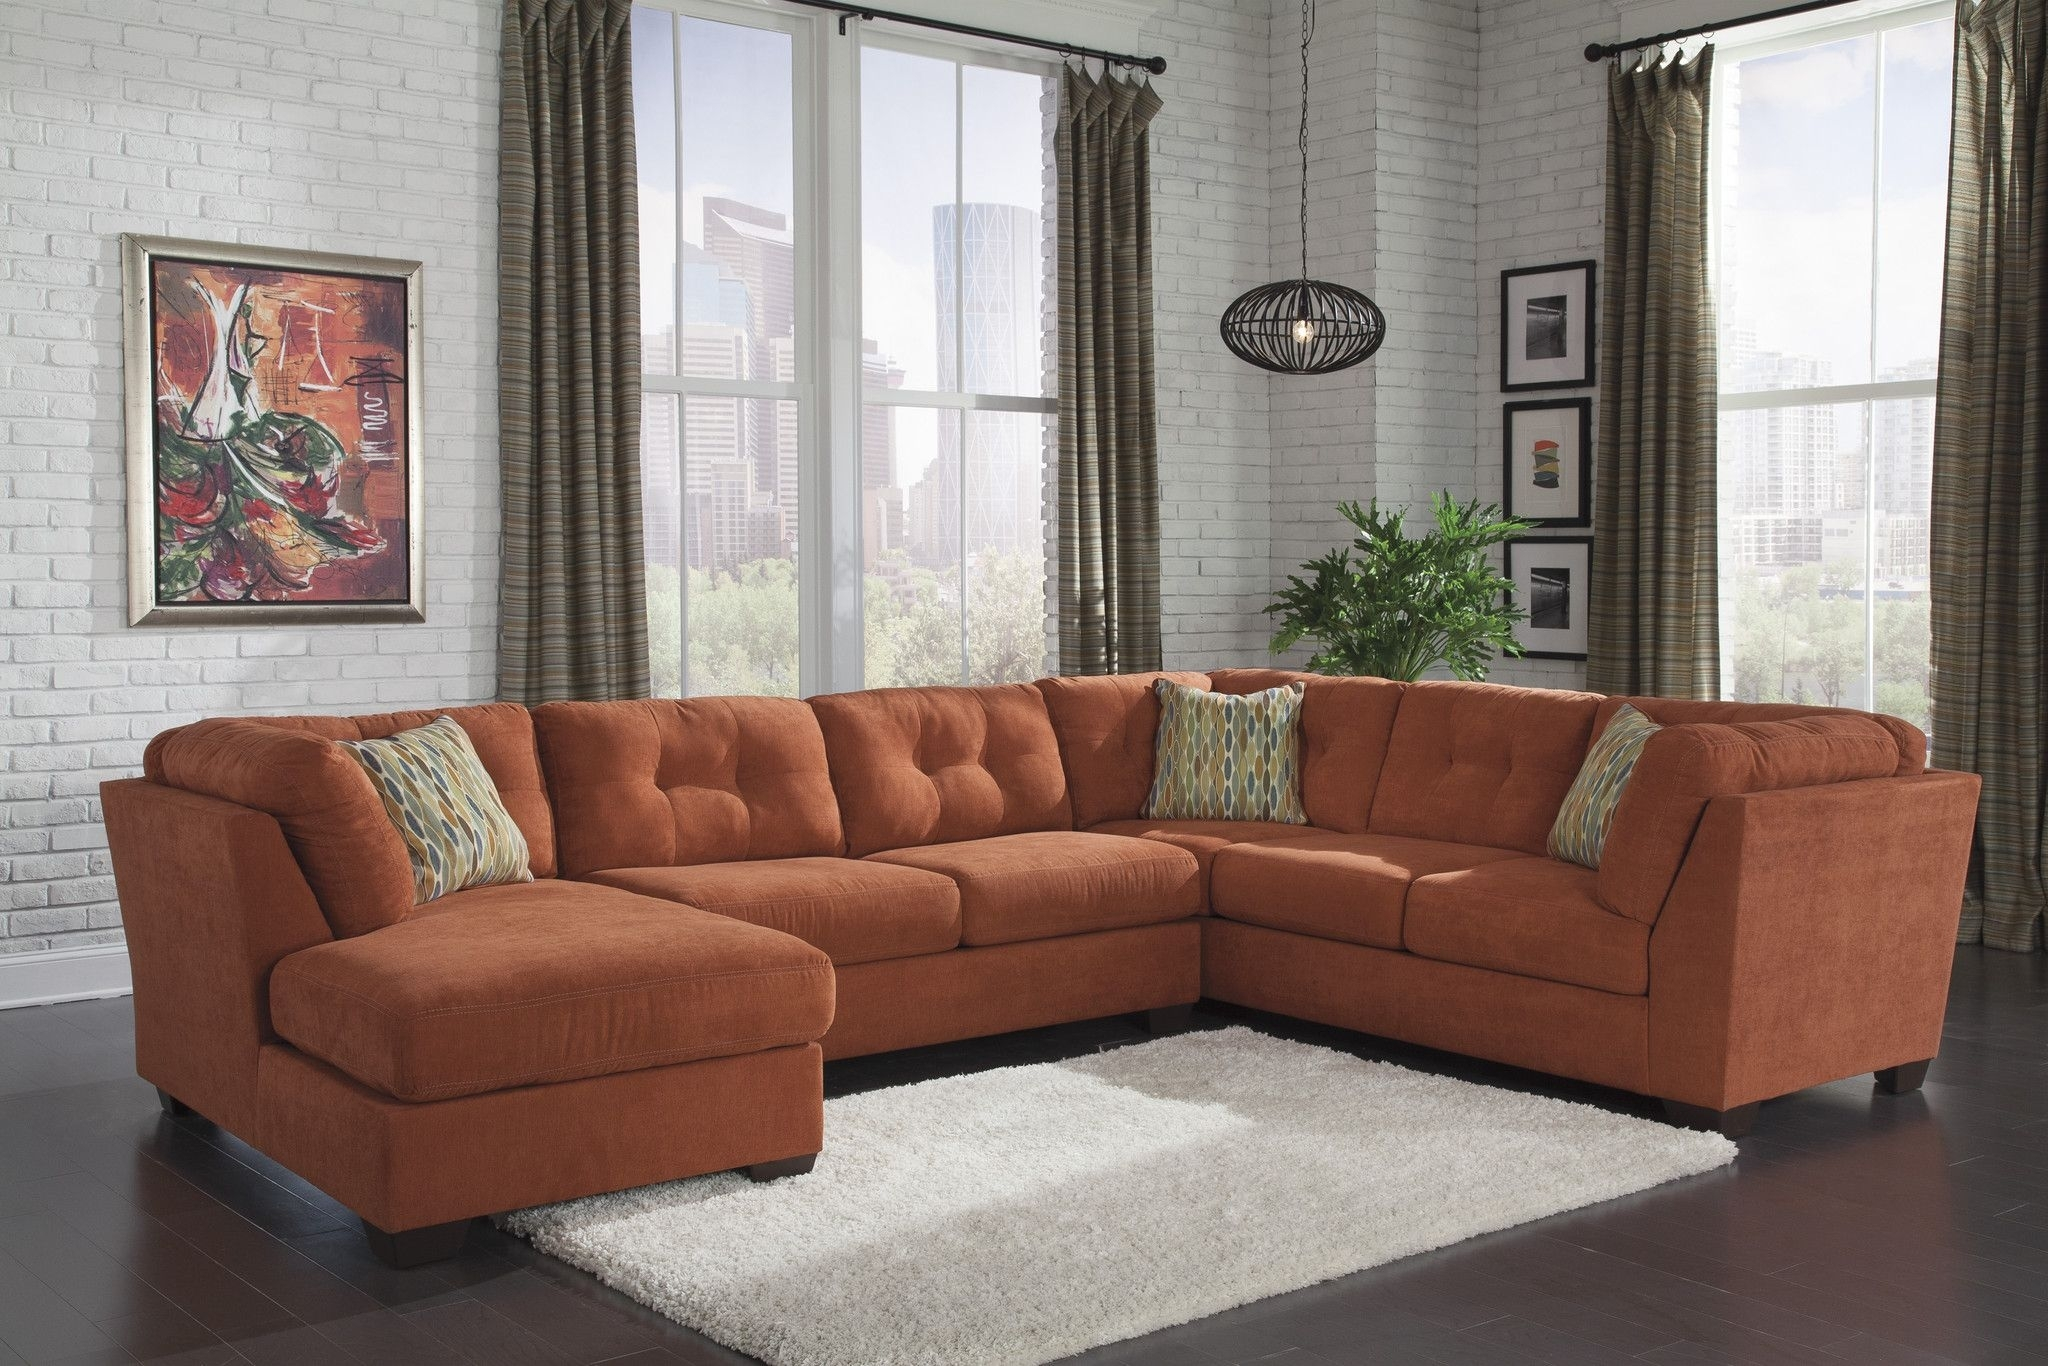 Ashley Furniture Delta City Orange Sectional Left 1970116+34+38 inside Turdur 2 Piece Sectionals With Laf Loveseat (Image 3 of 30)